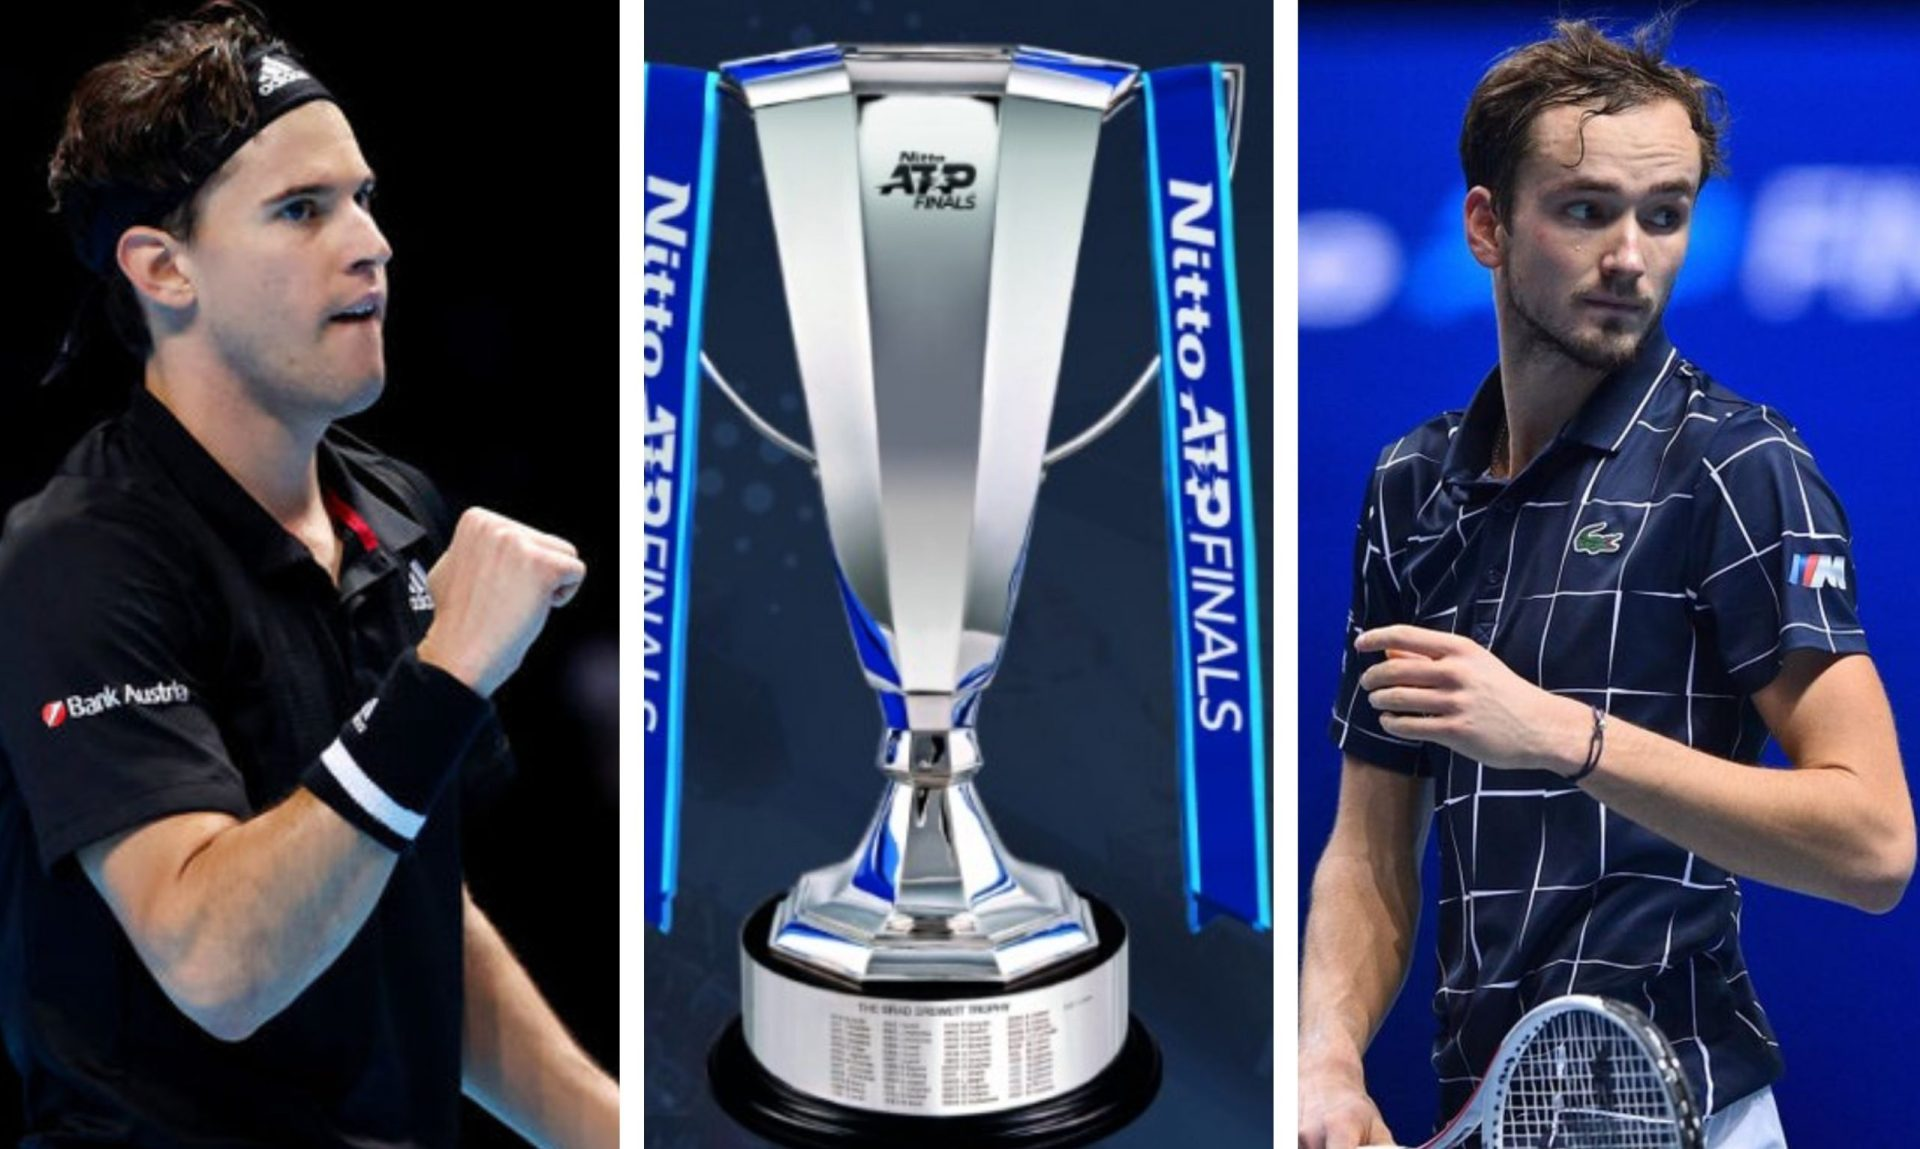 Medvedev stuns Nadal, Thiem outclasses Novak to reach ATP Finals decider - THE SPORTS ROOM